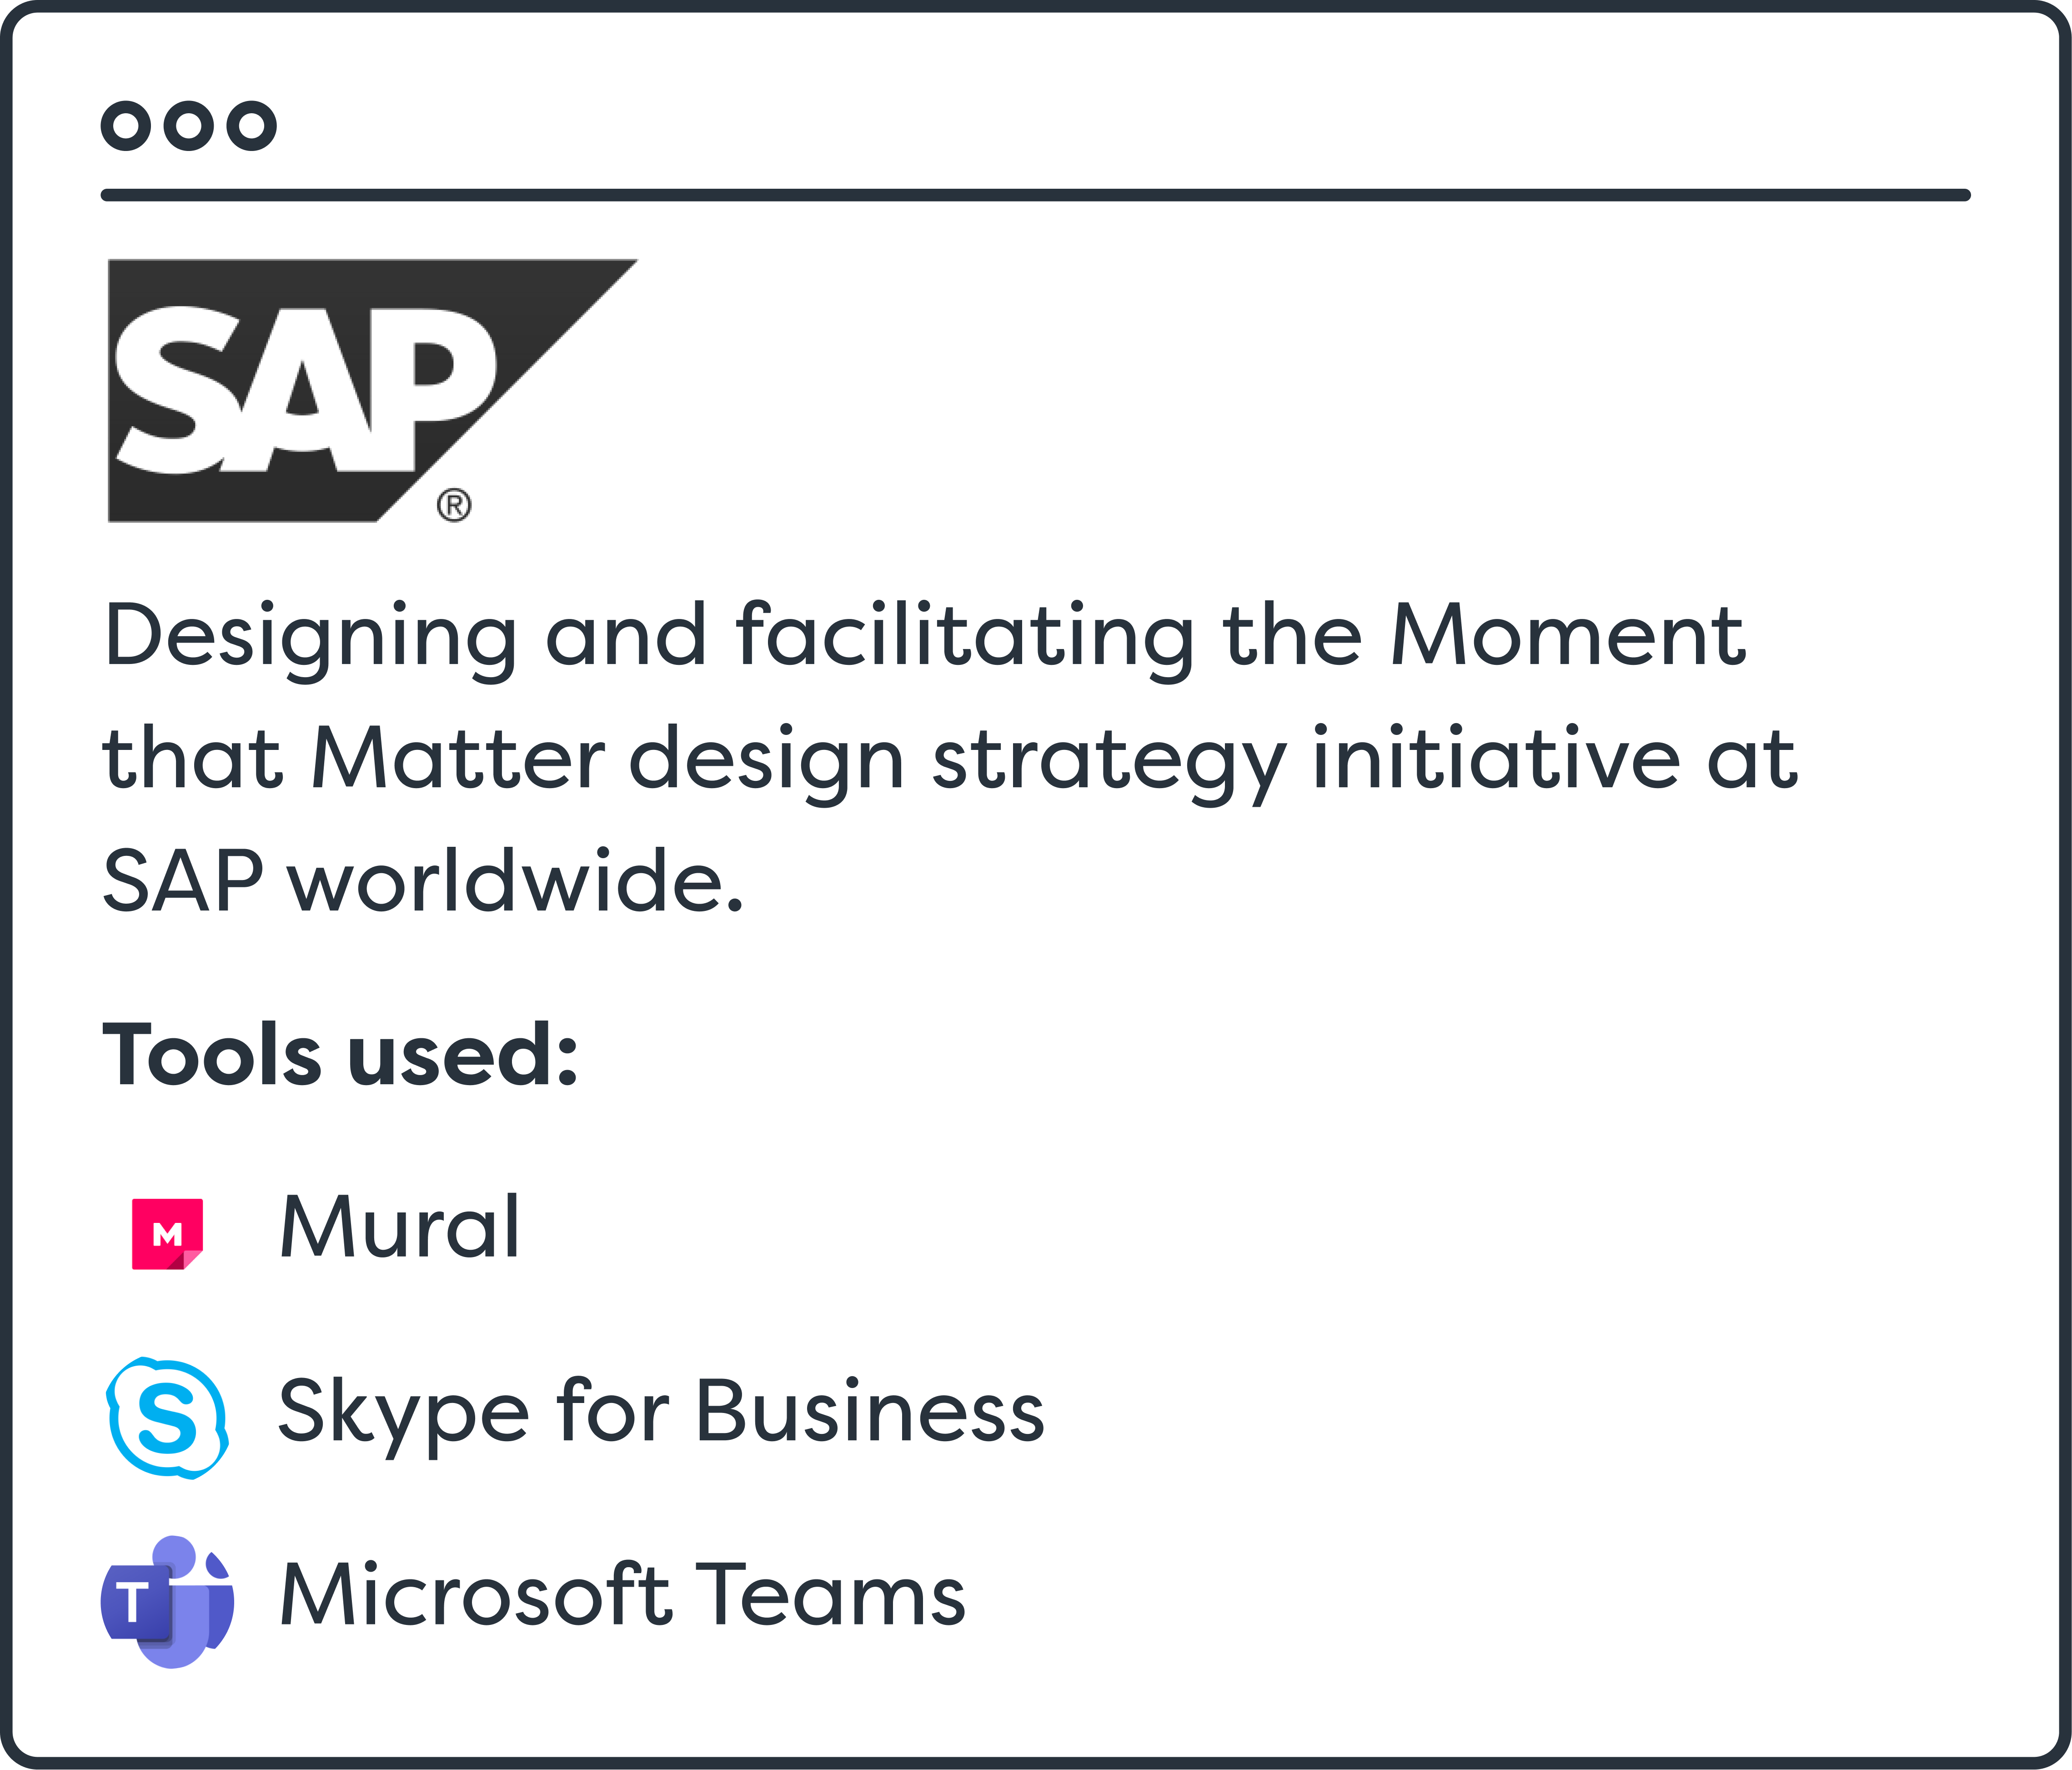 SAP Case Summary